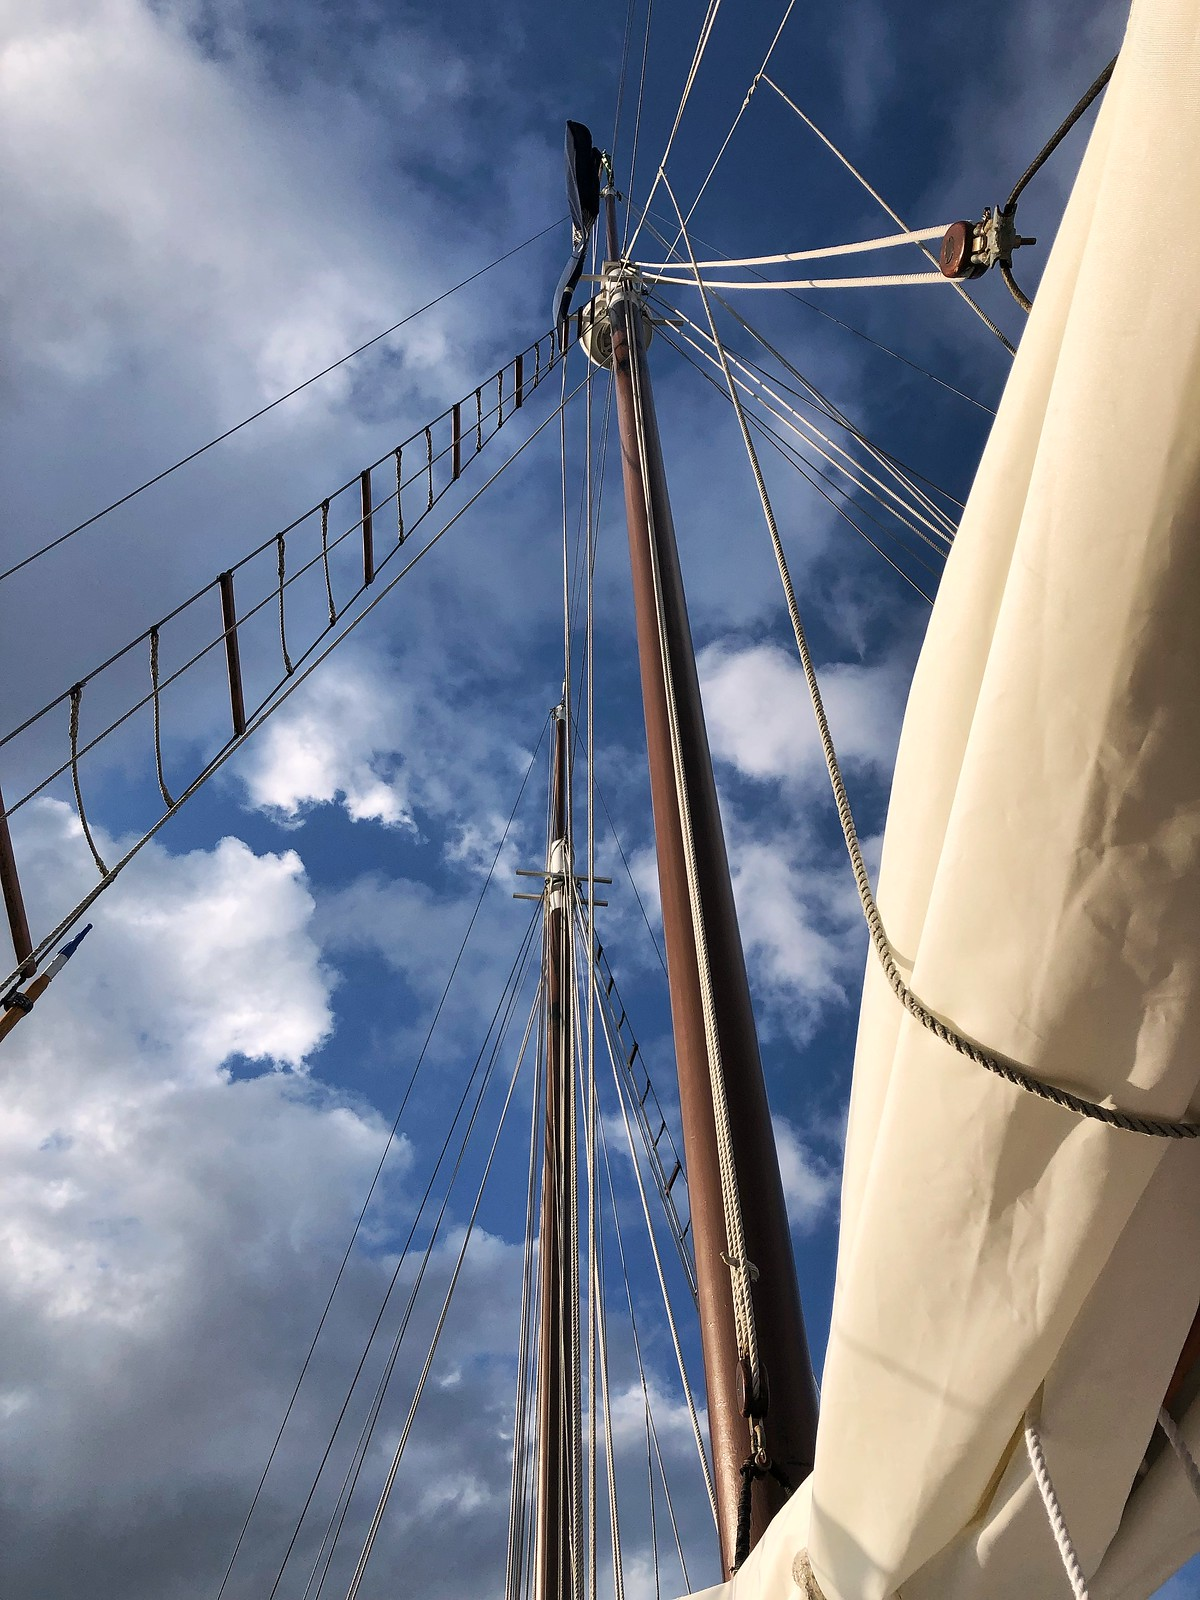 Schooner Pride Sunset Sail | What to do in Charleston | First Timer's Guide to 3 Days in Charleston South Carolina | Charleston Travel Guide | Best Things to do in Charleston | Best Places to visit in Charleston